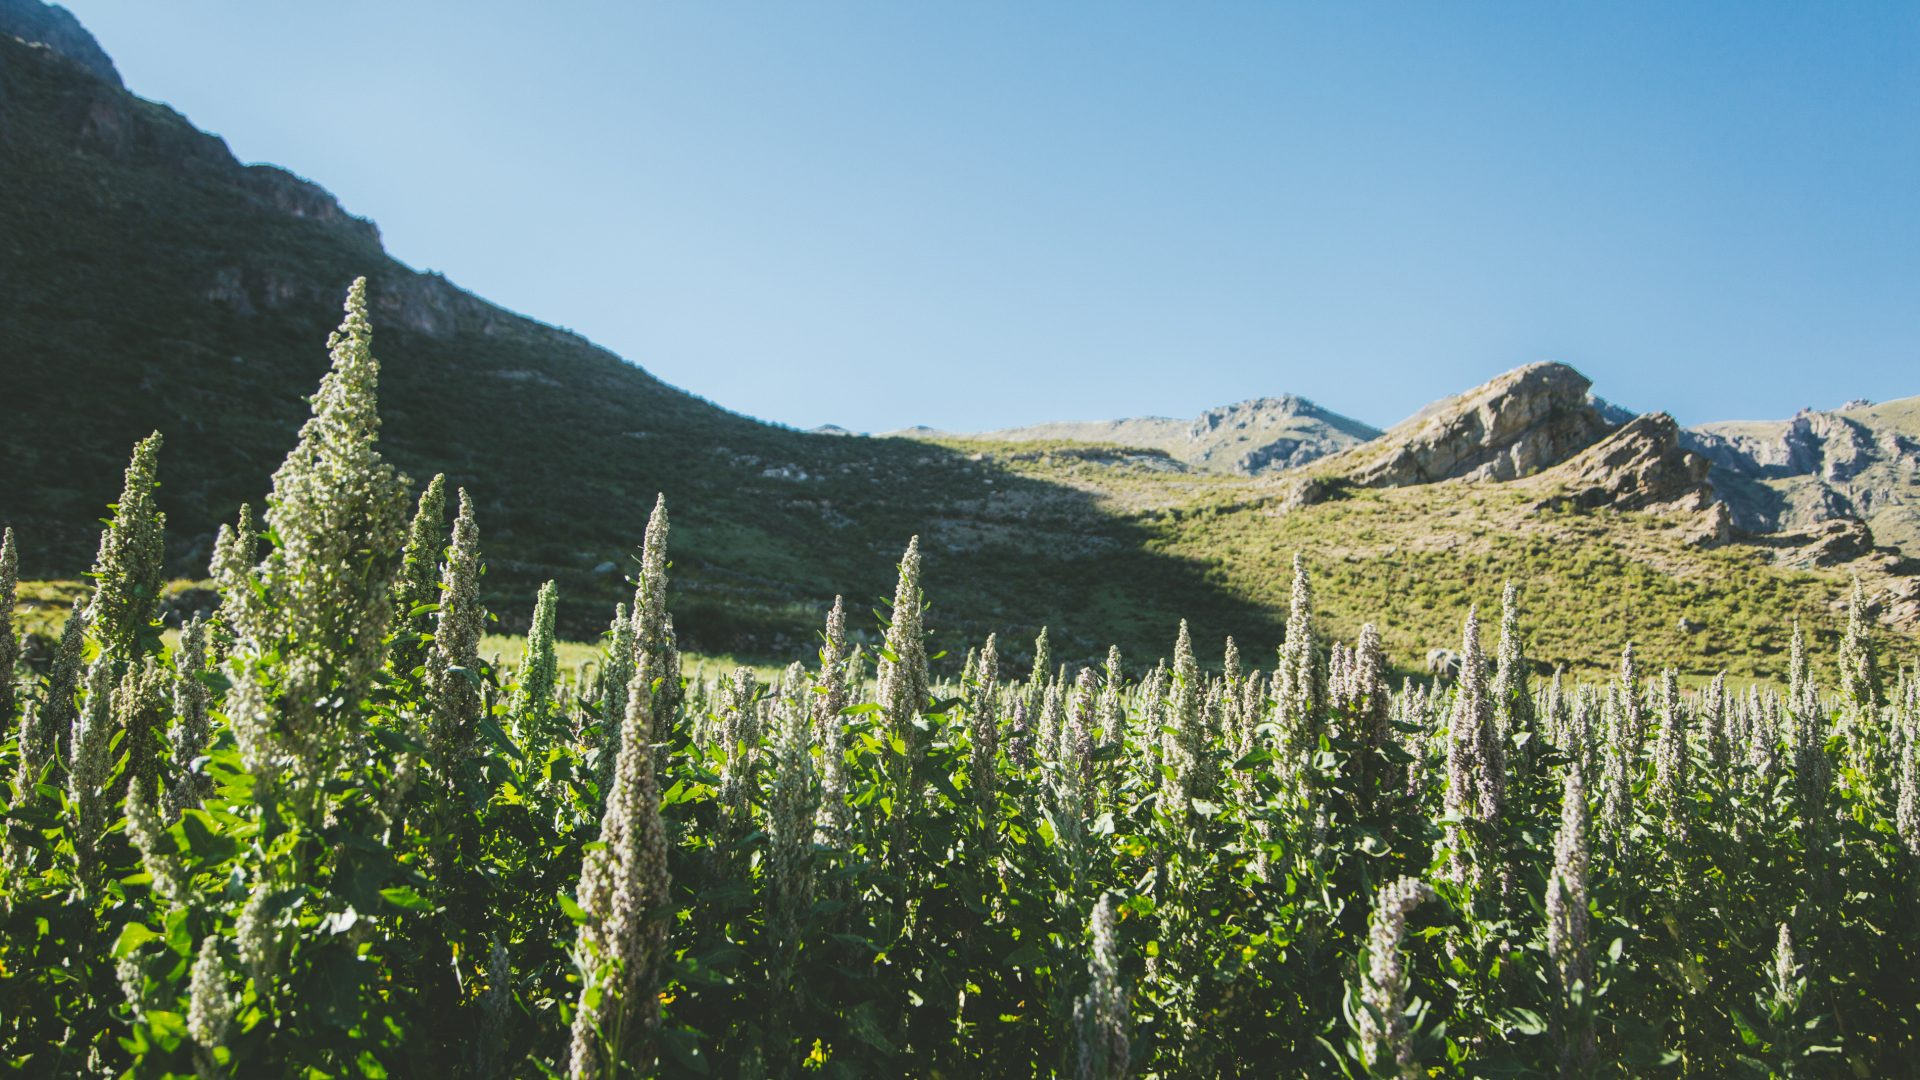 Quinoa flowers front the backdrop of green mountains in the Colca Canyon in Peru